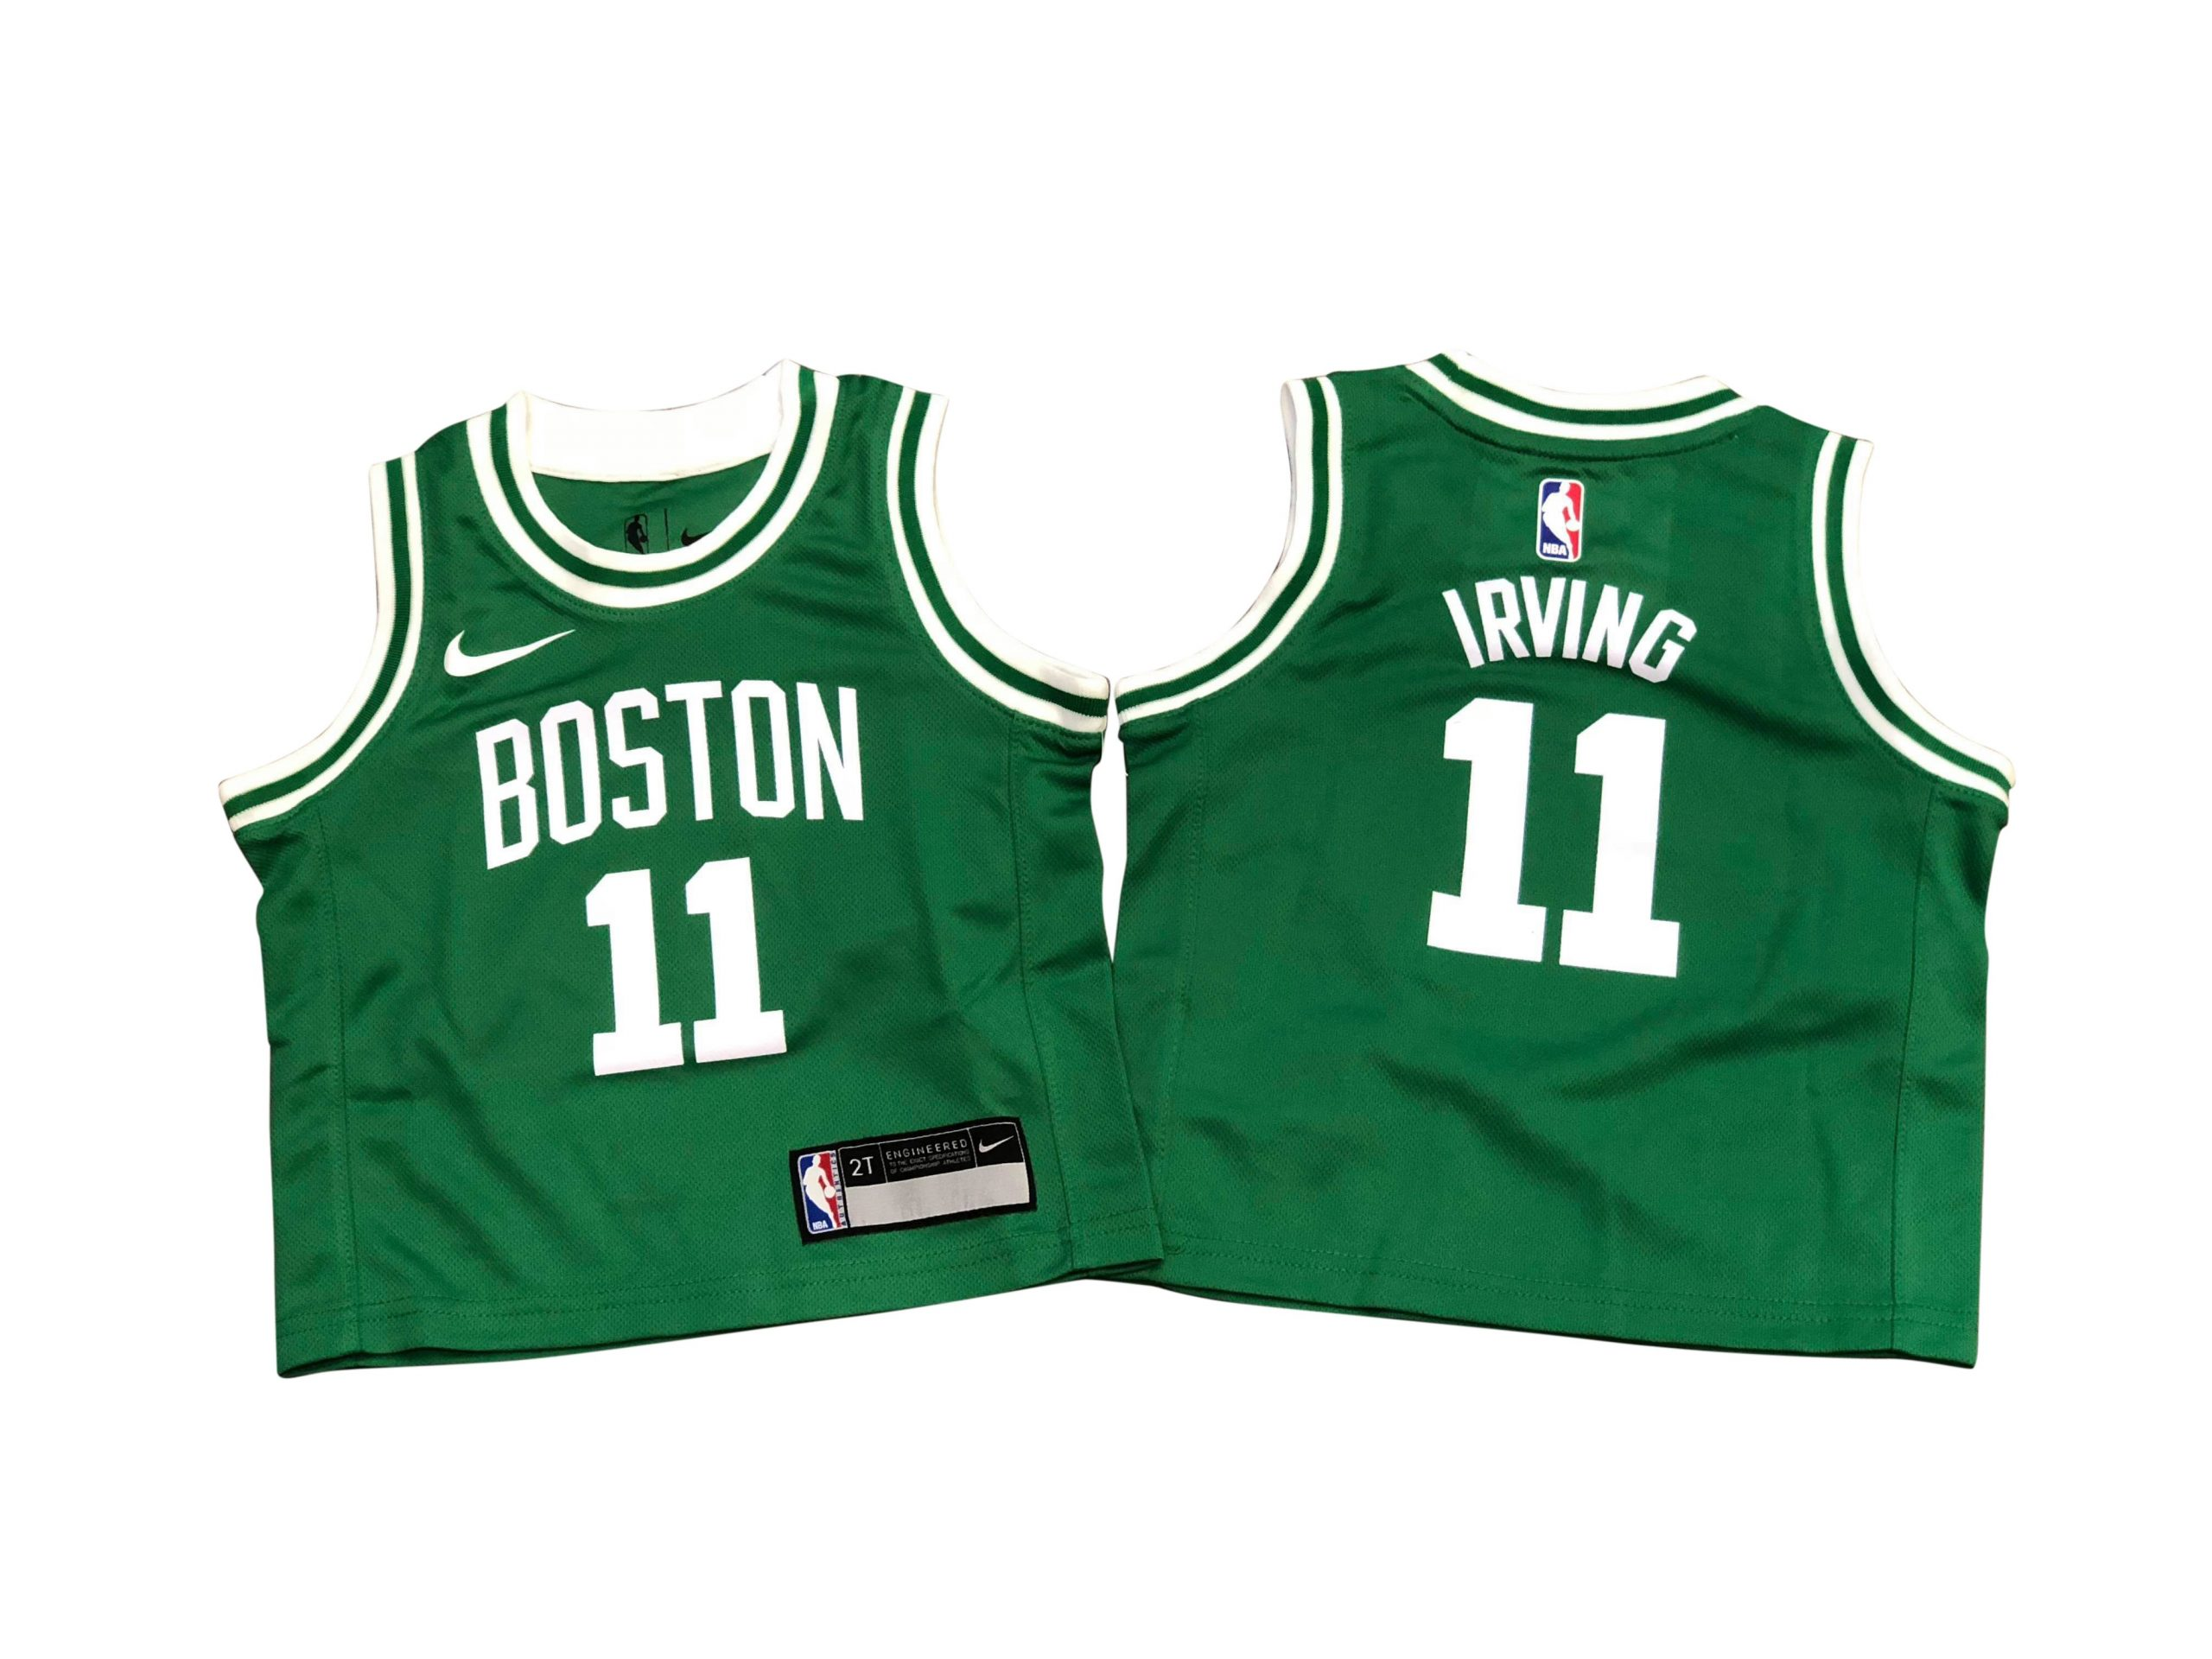 https://www.2012discountjerseysfromchina.com/wp-content/uploads/2020/01/wholesale-dog-jerseys-Nike-Kyrie-Irving-Boston-Celtics-Icon-Edition-Toddler-NBA-Jersey-authentic-nba-jerseys-cheap-2-scaled.jpg